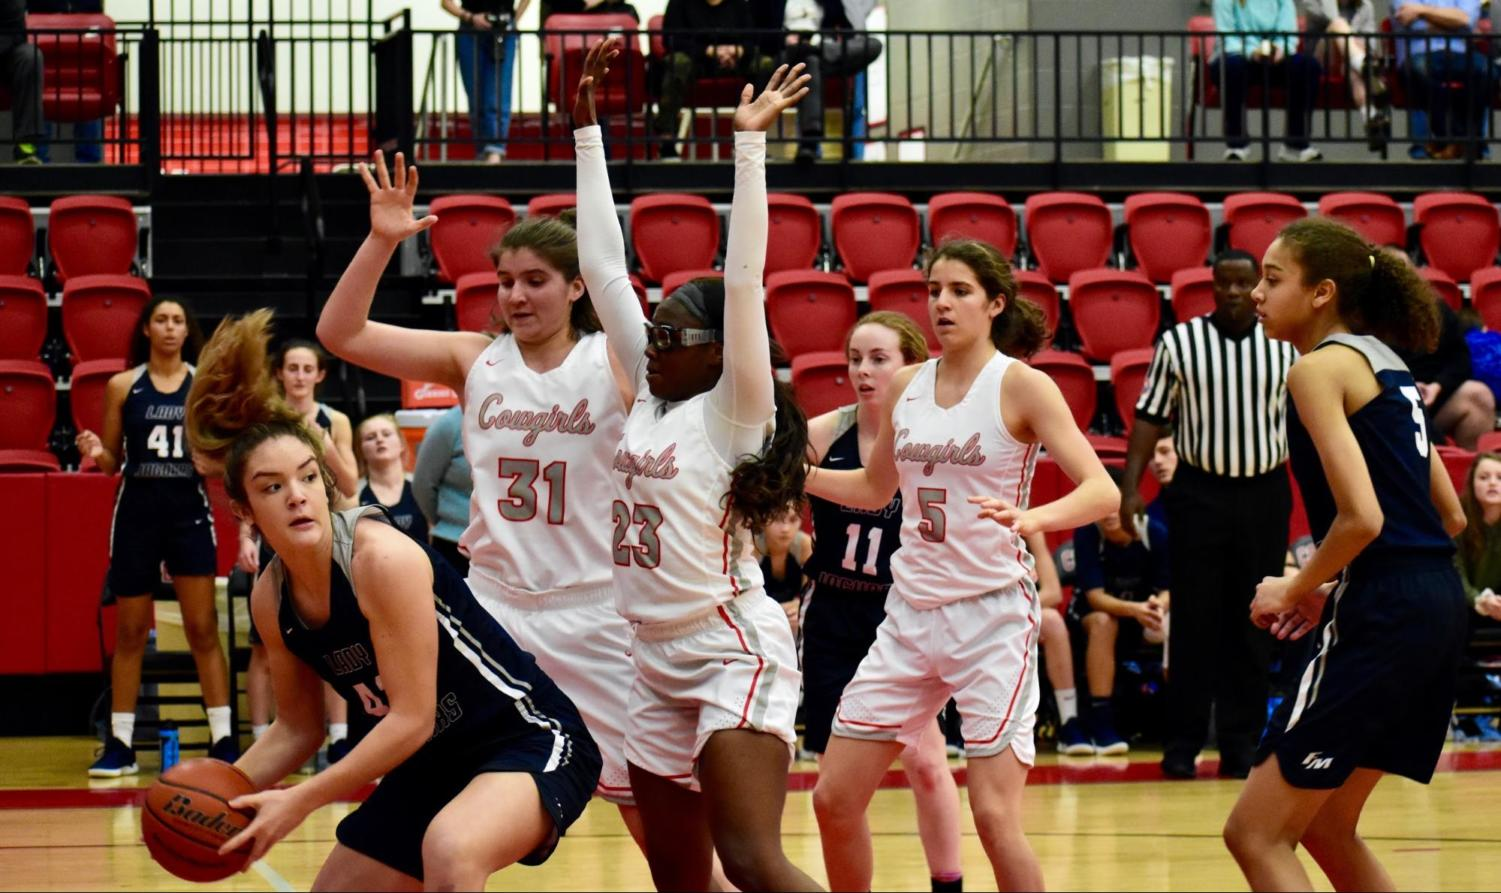 Four players from the Coppell girls basketball team, including senior forward Rowan Hassman (No. 31), junior center Nicole Obialo (No. 23), were named to the District 6-6A All-District first team. Coppell junior guards Jordan Nelson and Kennedi Rogers were named to the second team.